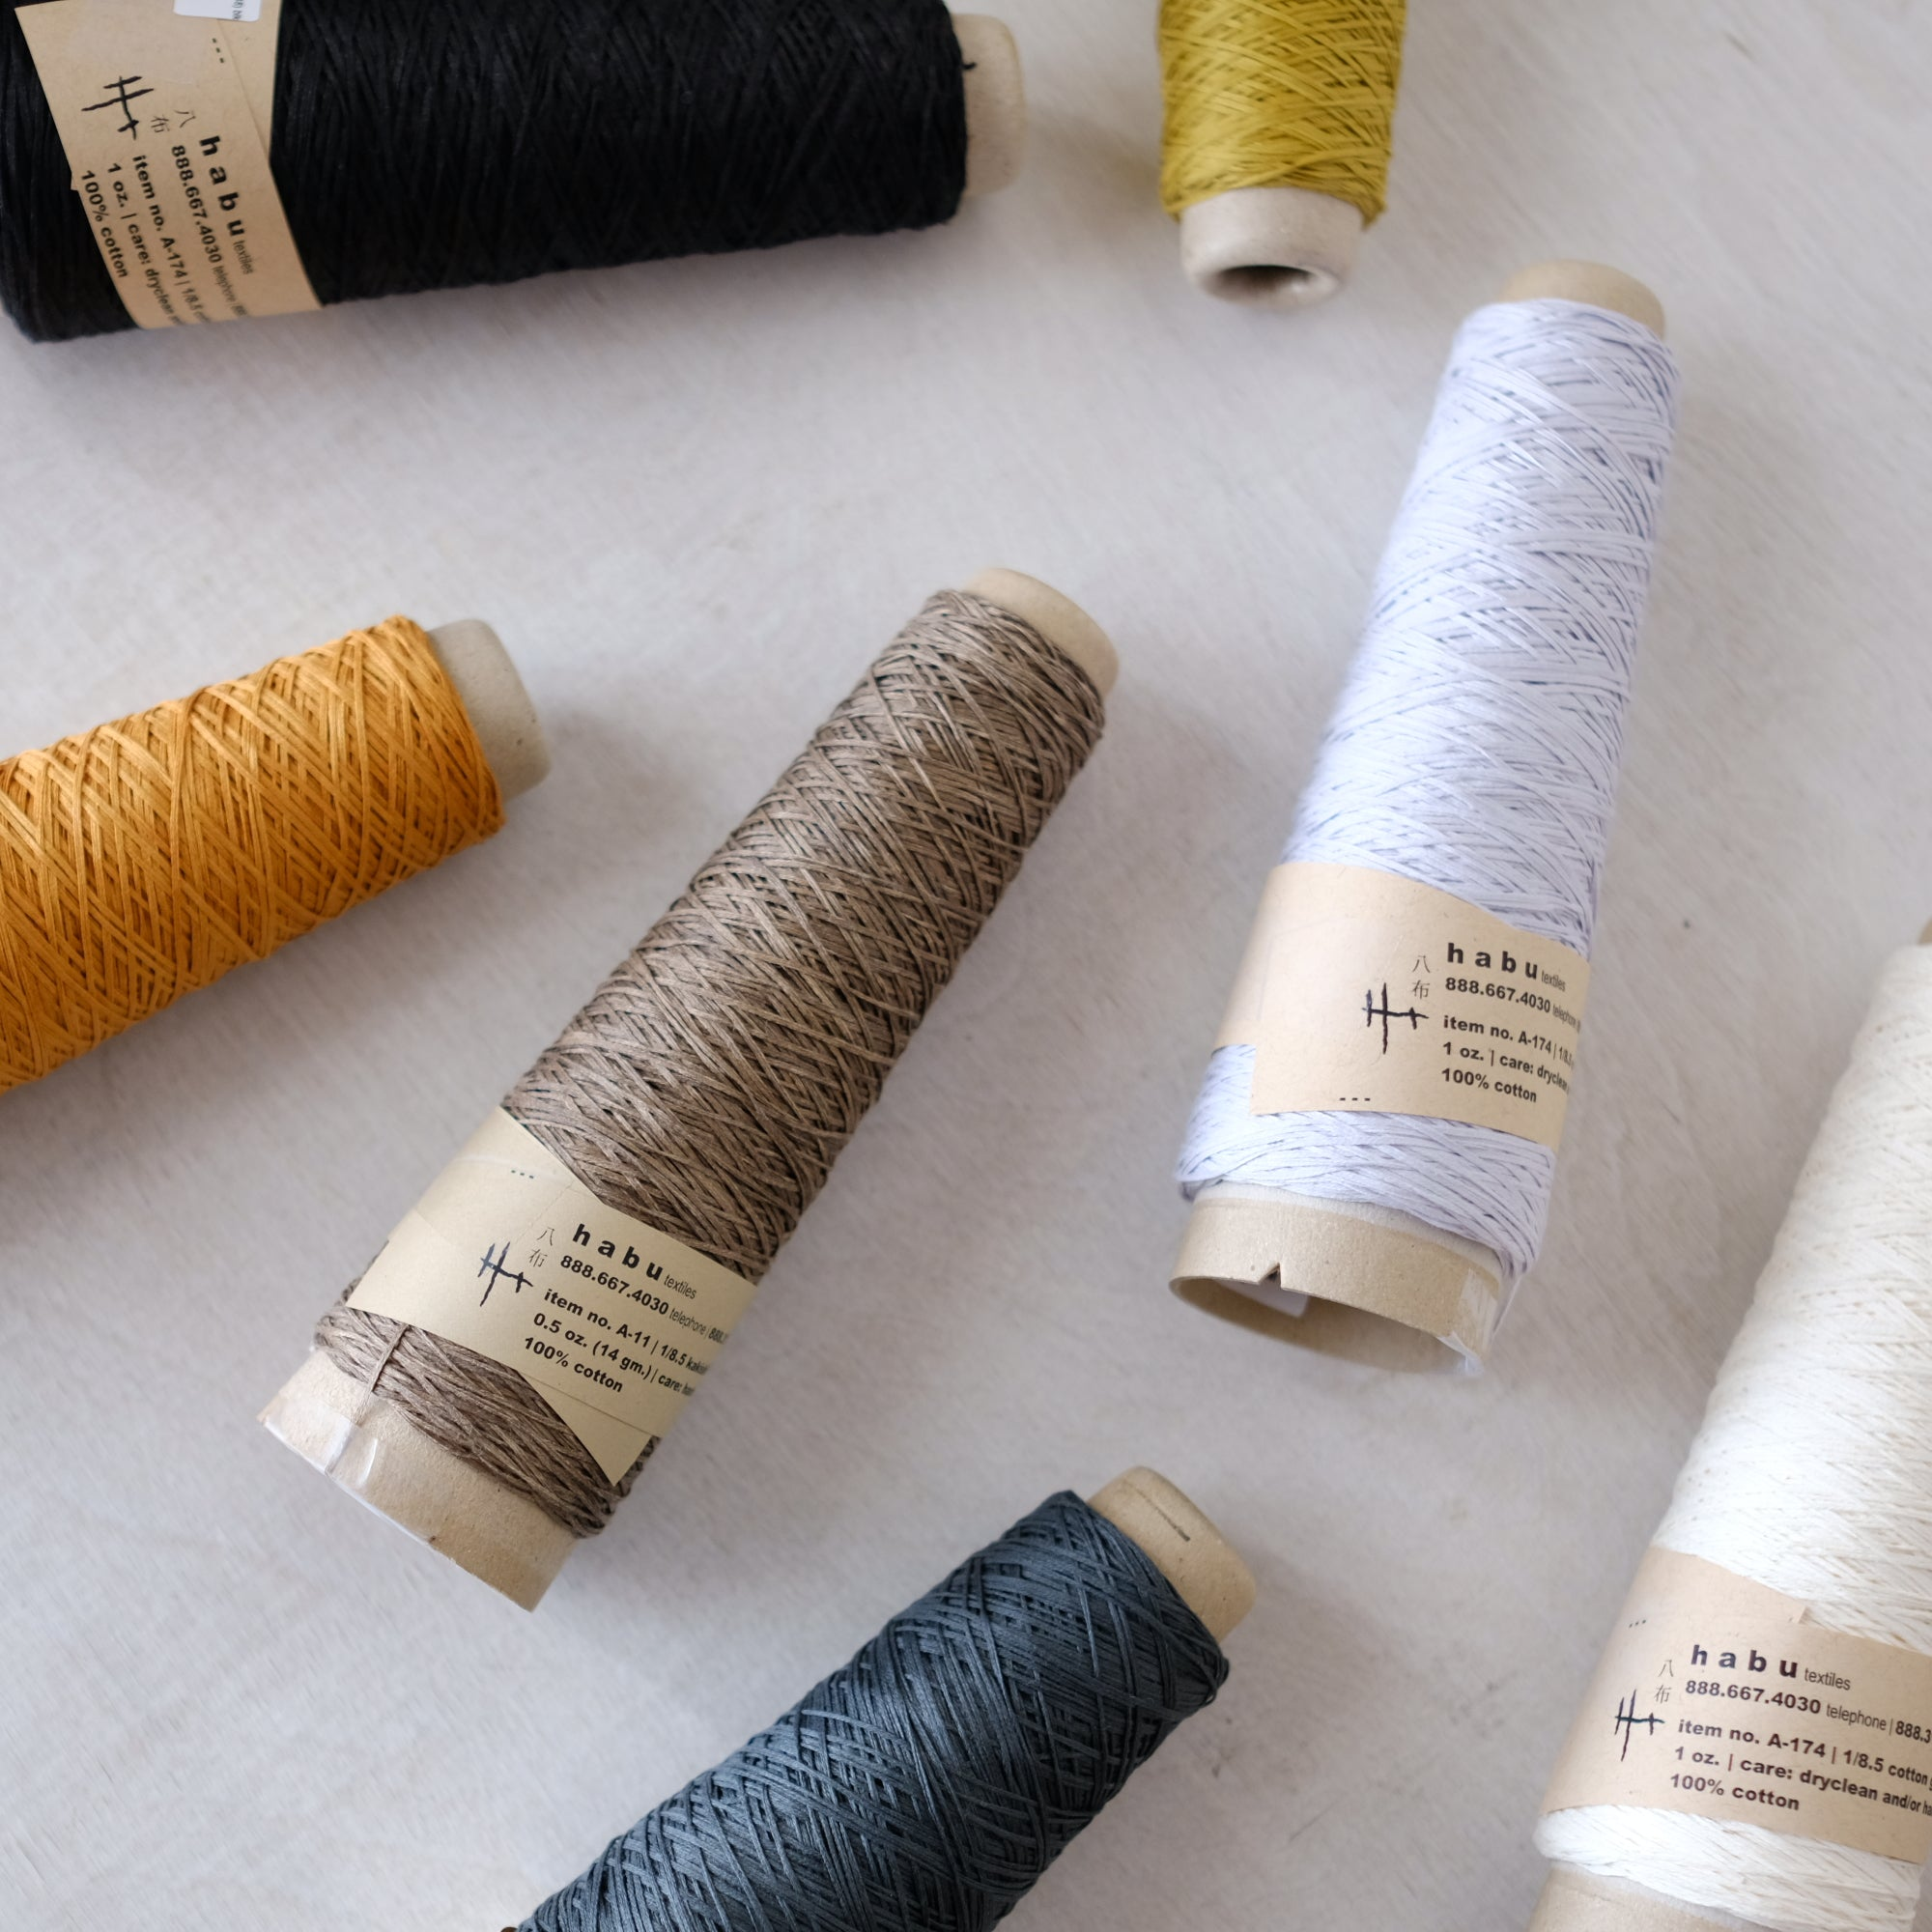 Habu Textiles - A-174 Gima Cotton - Just added!